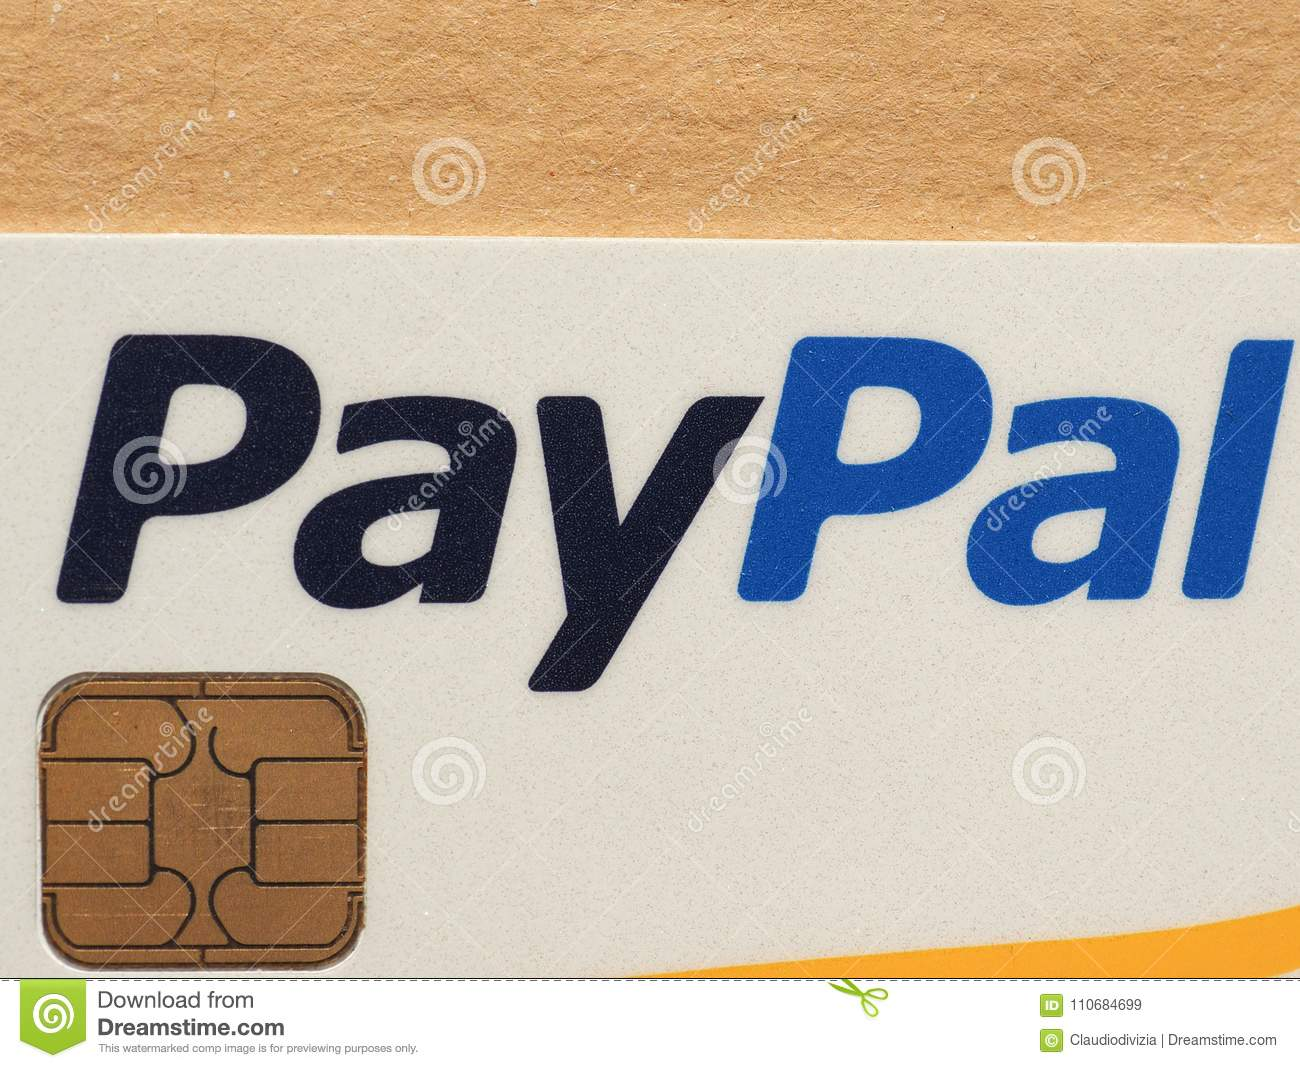 Paypal credit card editorial stock image image of wealth 110684699 milan italy circa february 2018 paypal logo on a credit card biocorpaavc Choice Image